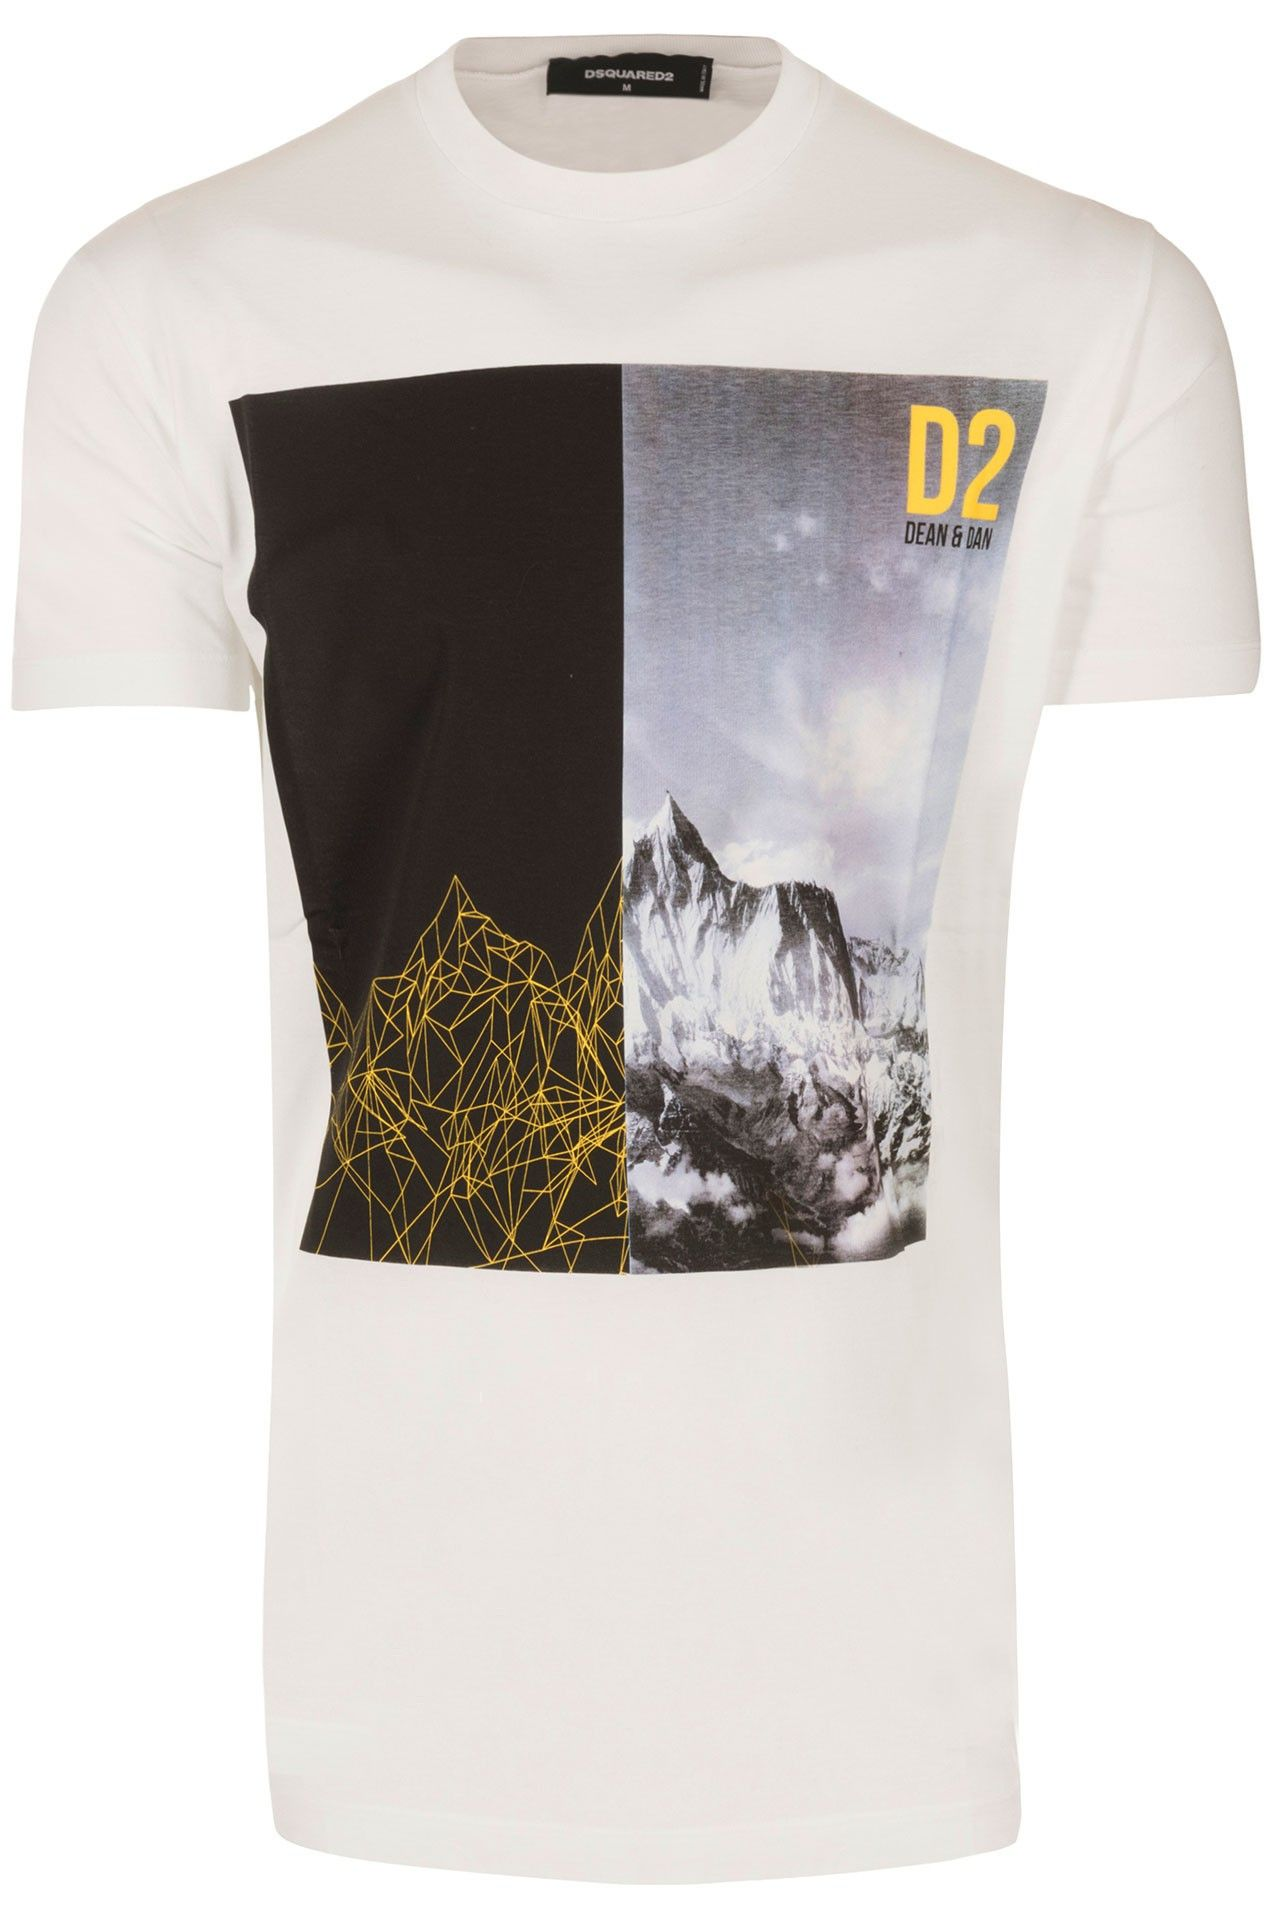 cdcadf0615 Prime Griffe #tshirt #dsquared #dsquared2 #shirt #new #collection ...